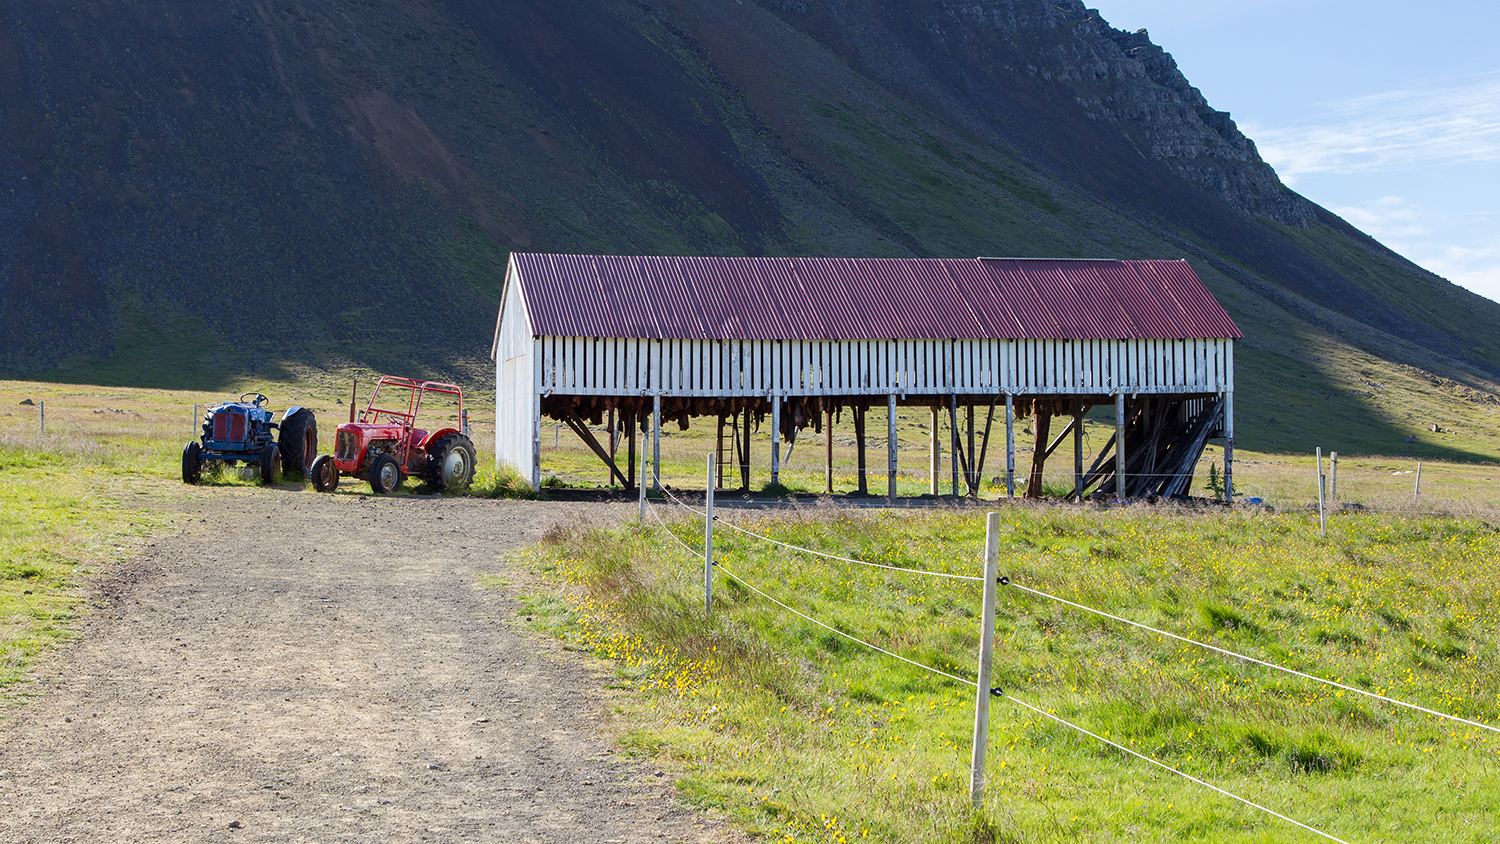 Icelandic fermented shark hanging in an open air shed.